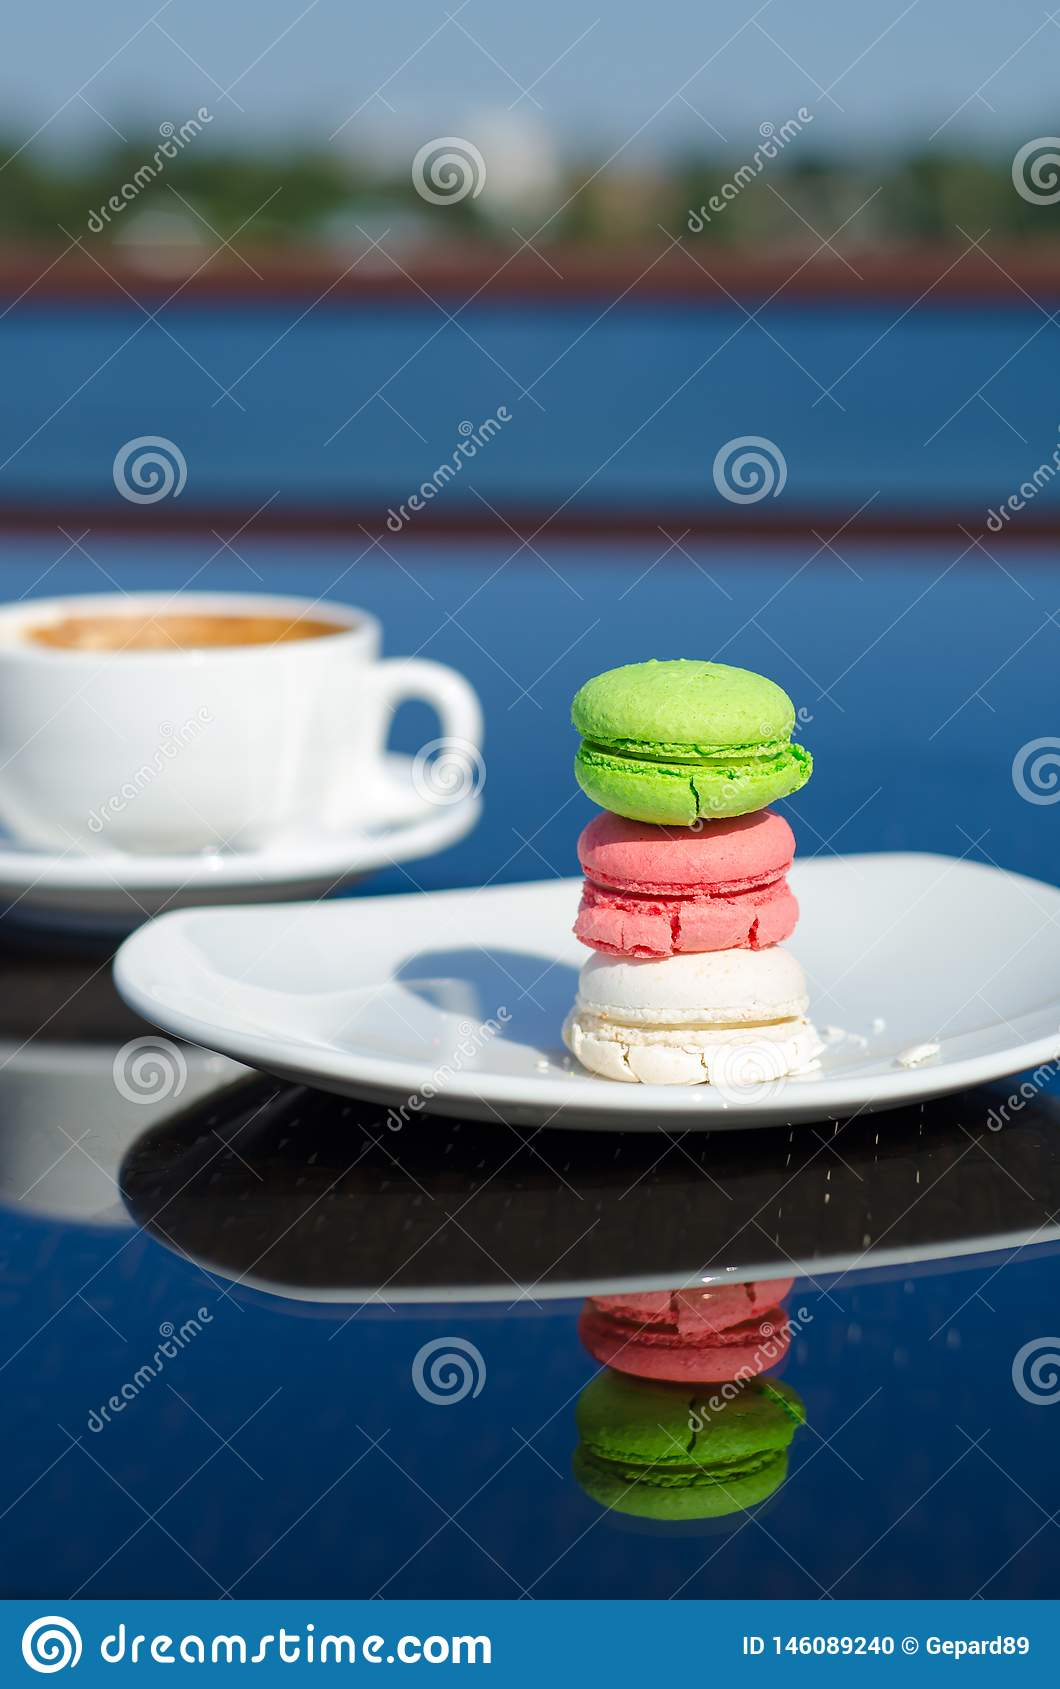 Macaroon dessert and coffee on the table